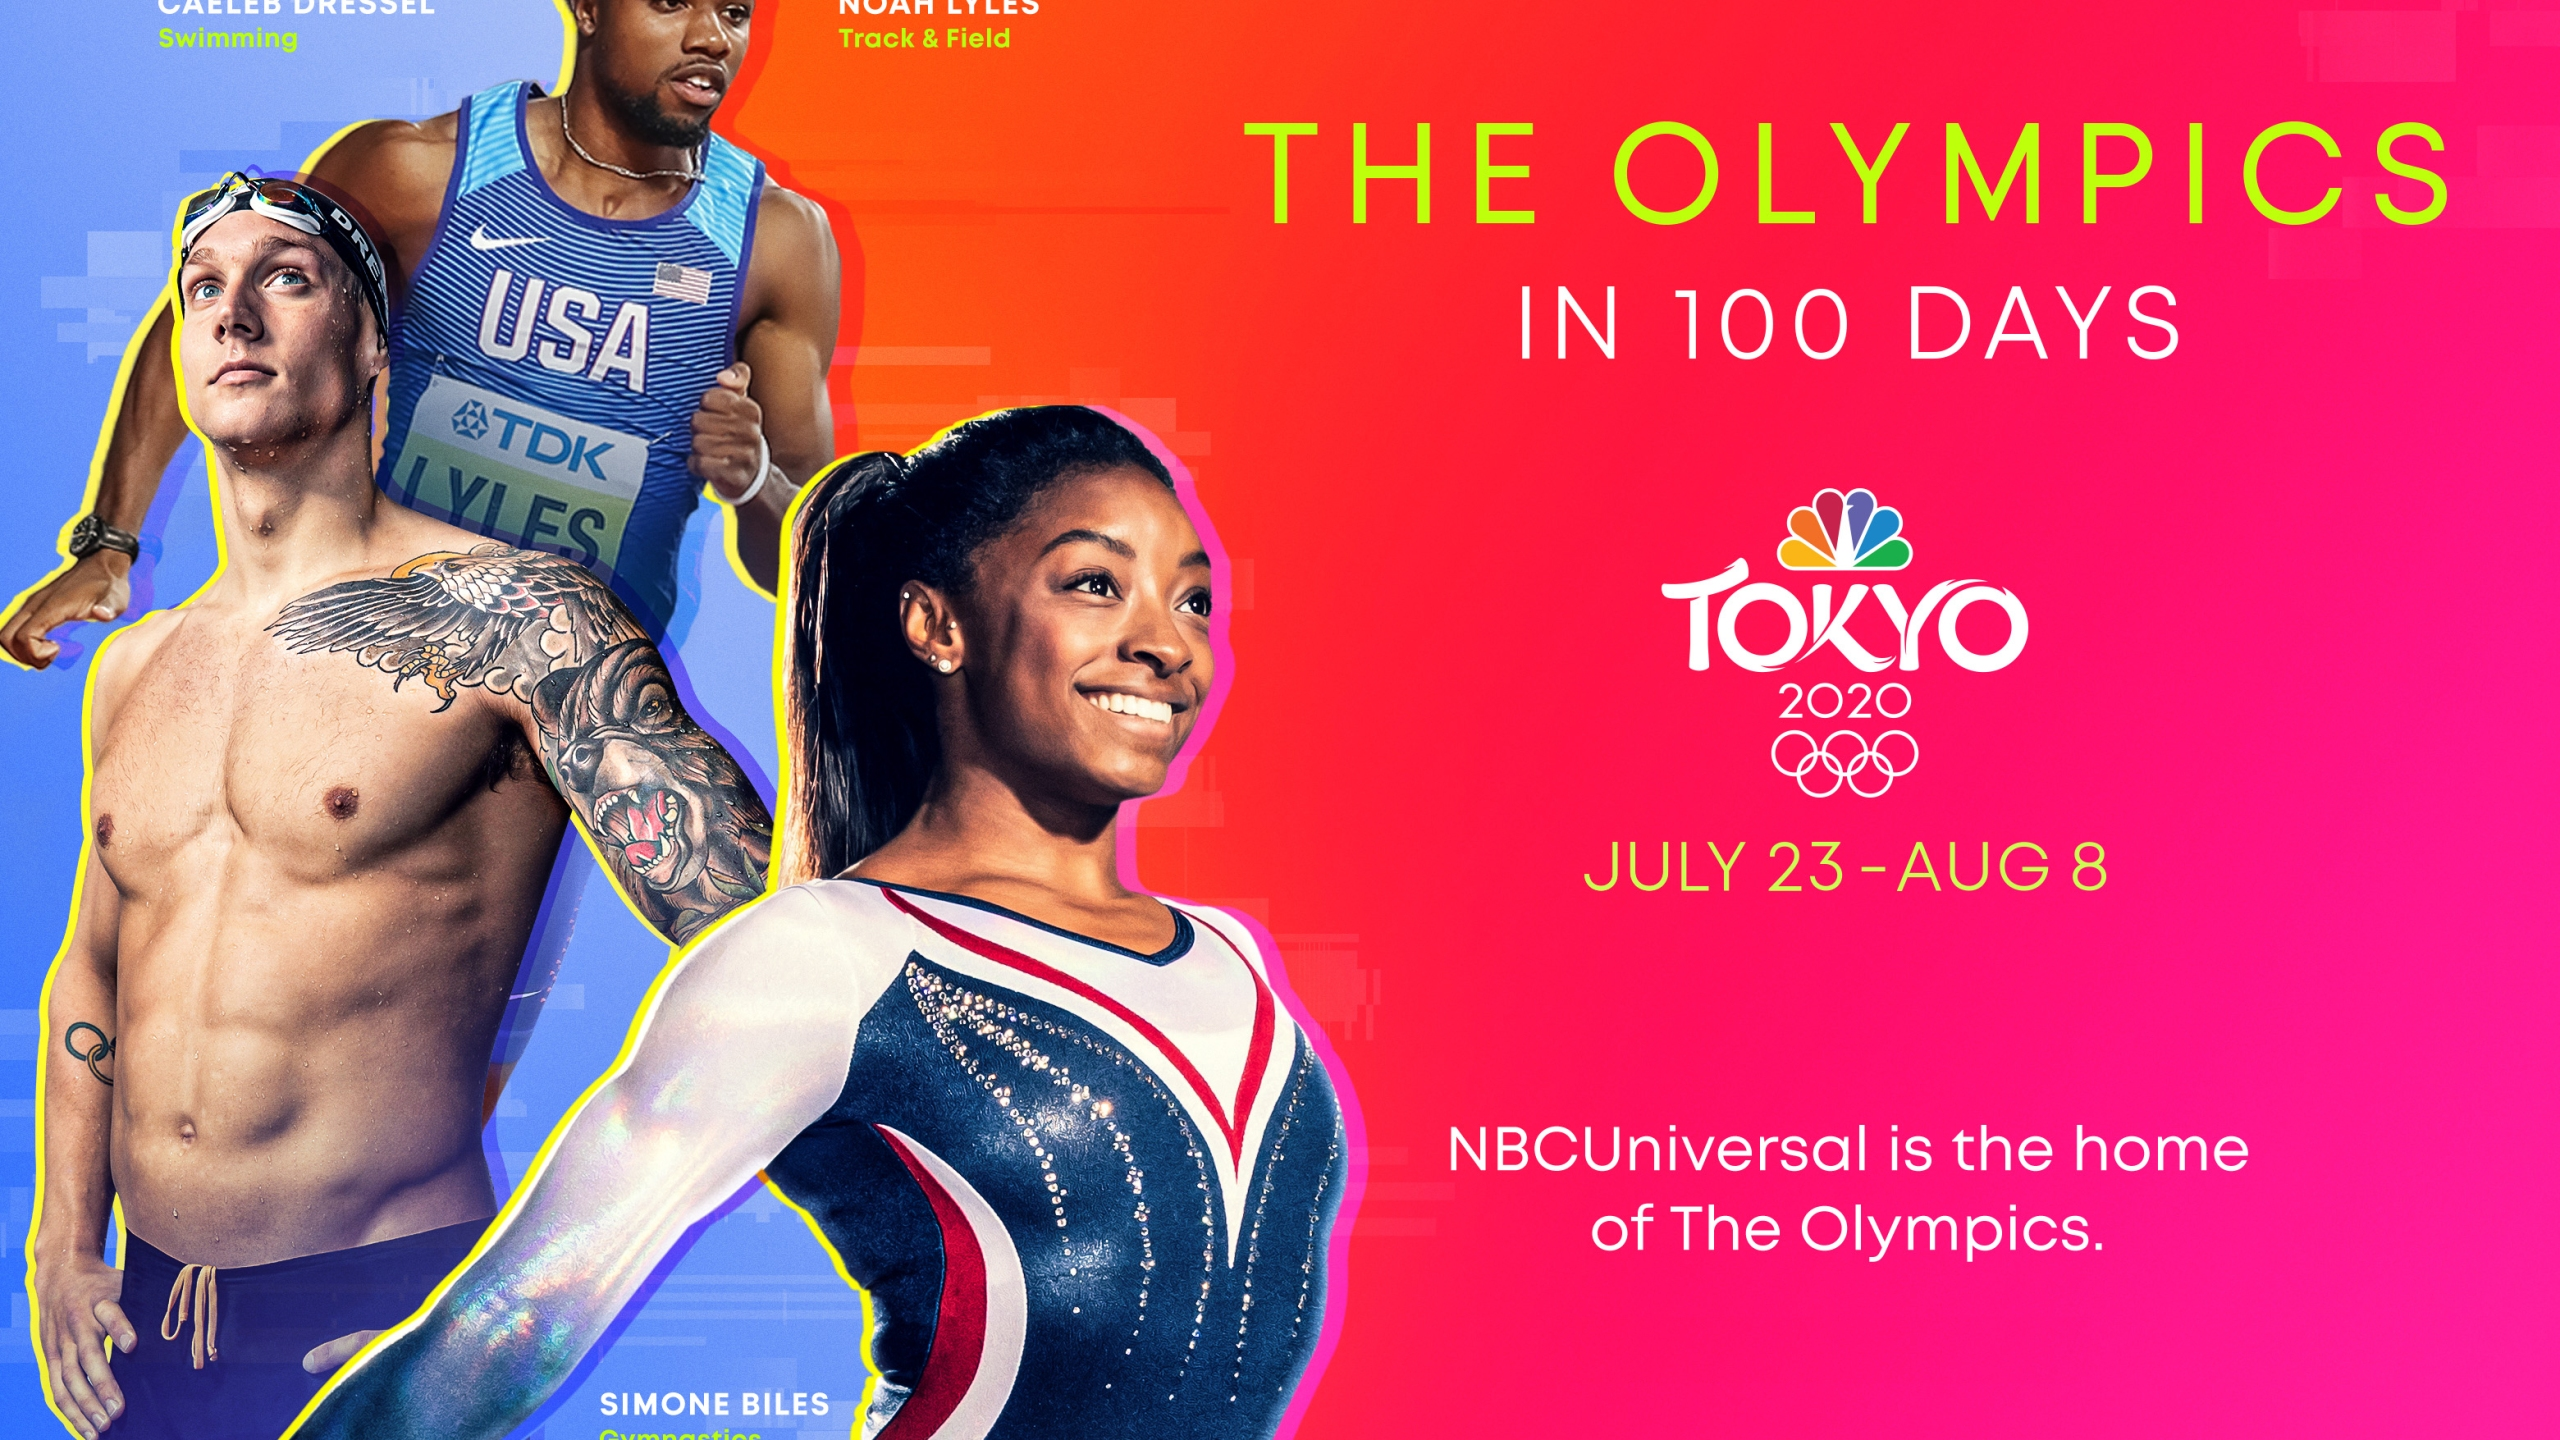 #TokyoOlympics in 100 DAYS